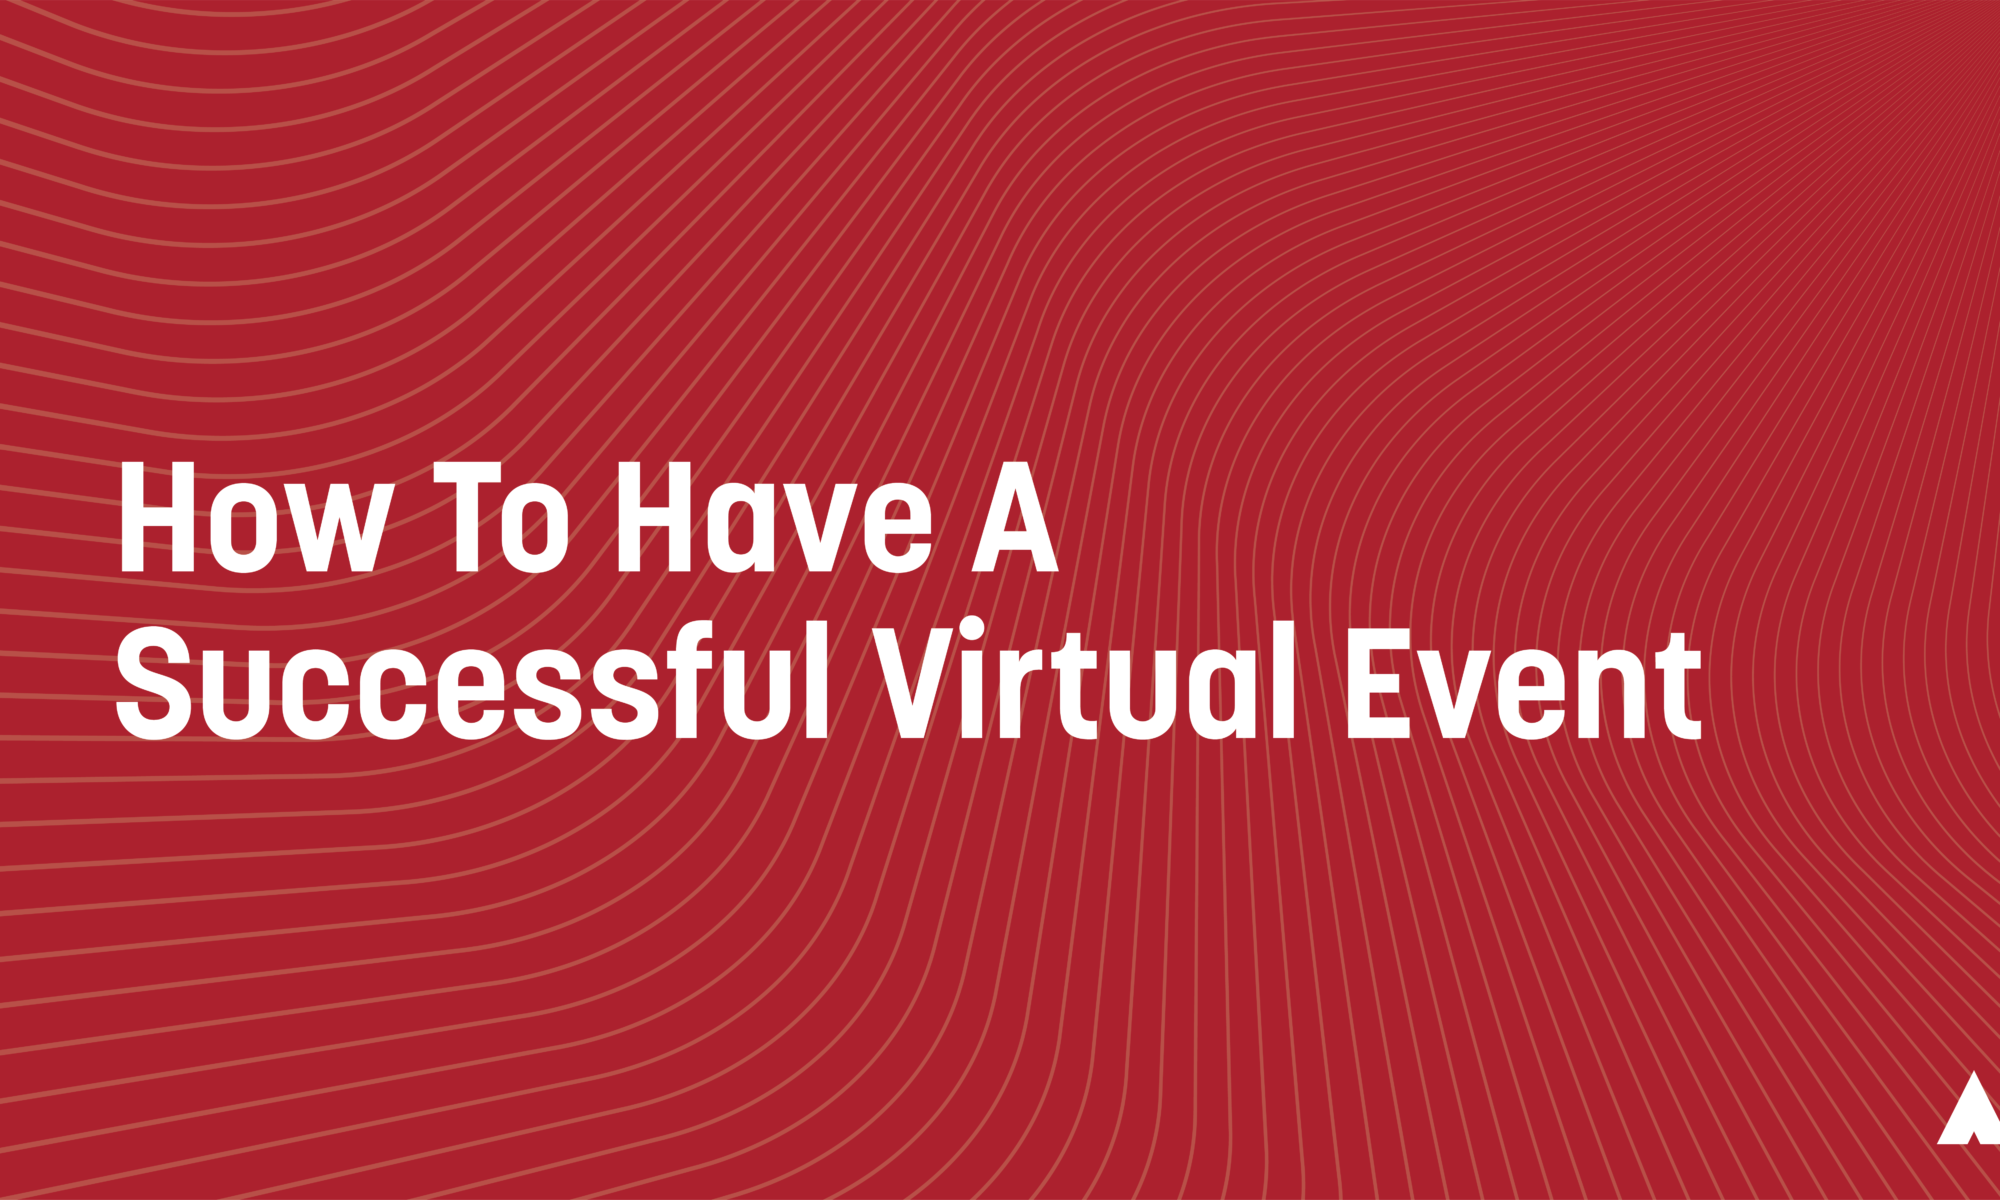 How To Have A Successful Virtual Event